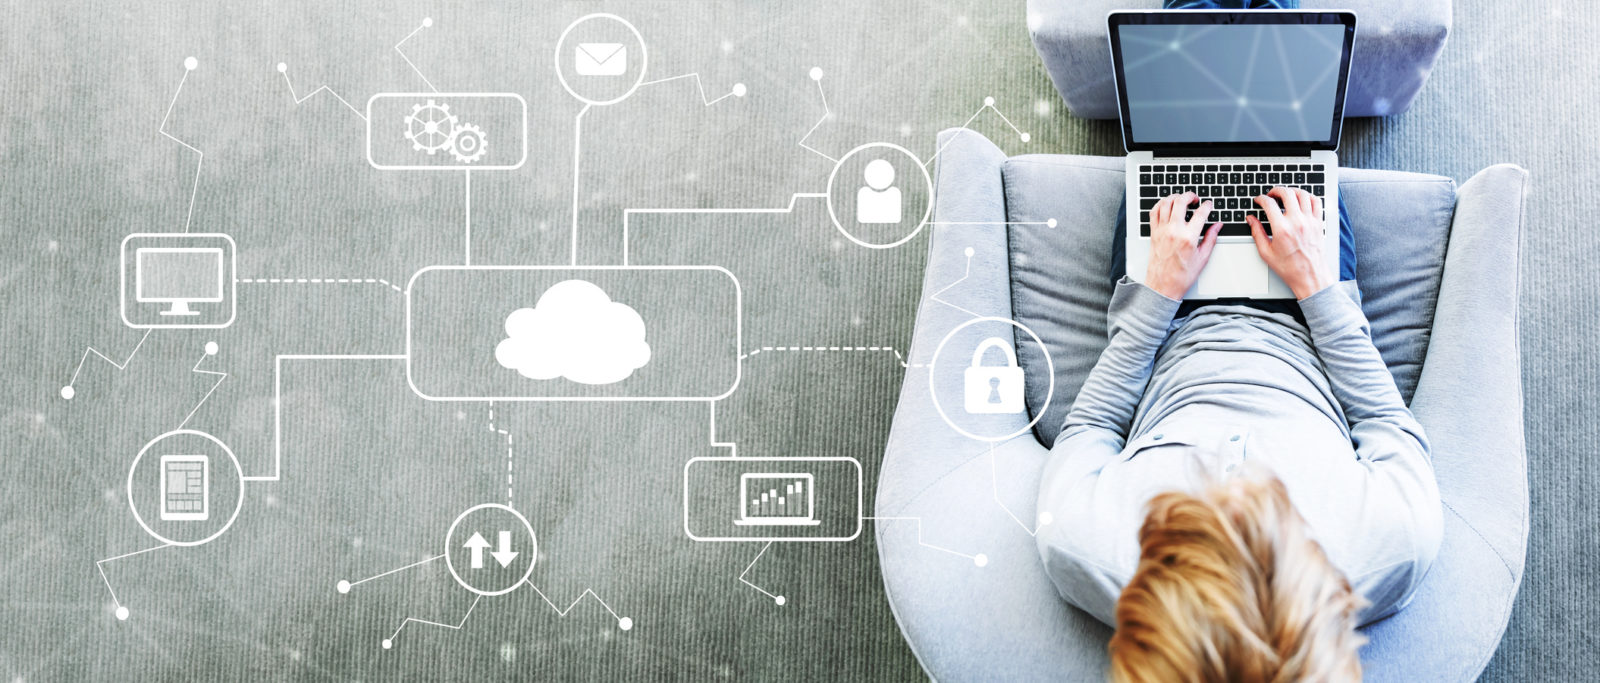 Read Cloud-Based Legaltech for Business Continuity